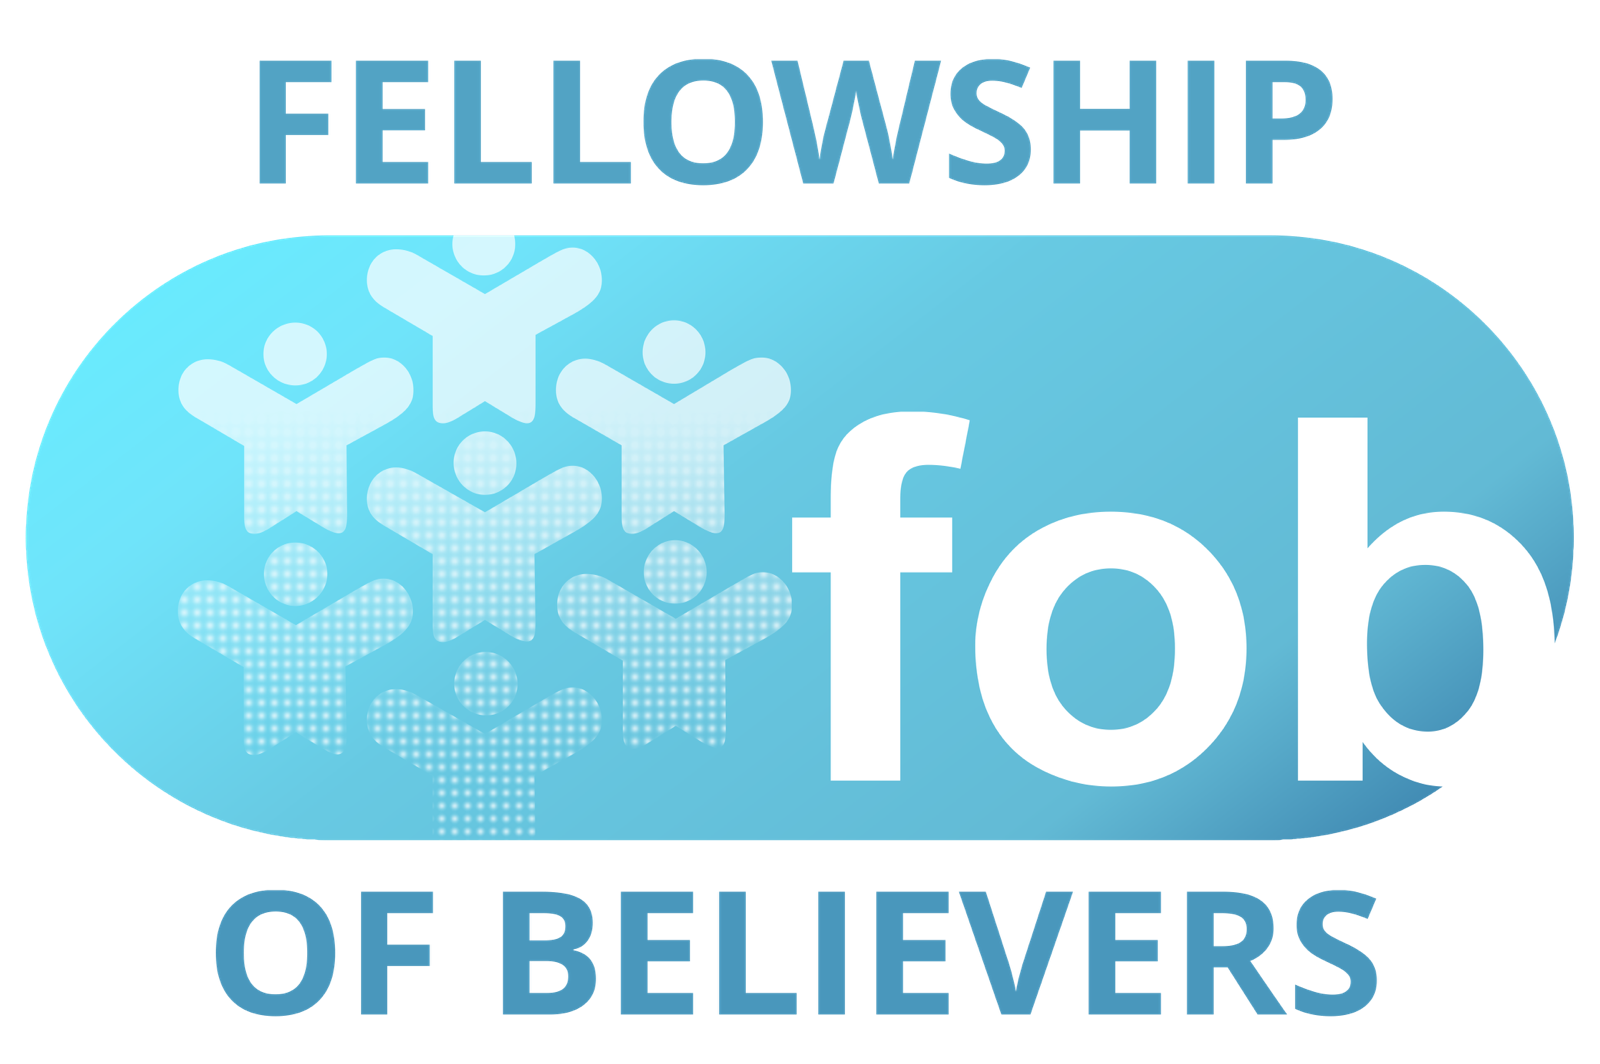 Fellowship Of Believers